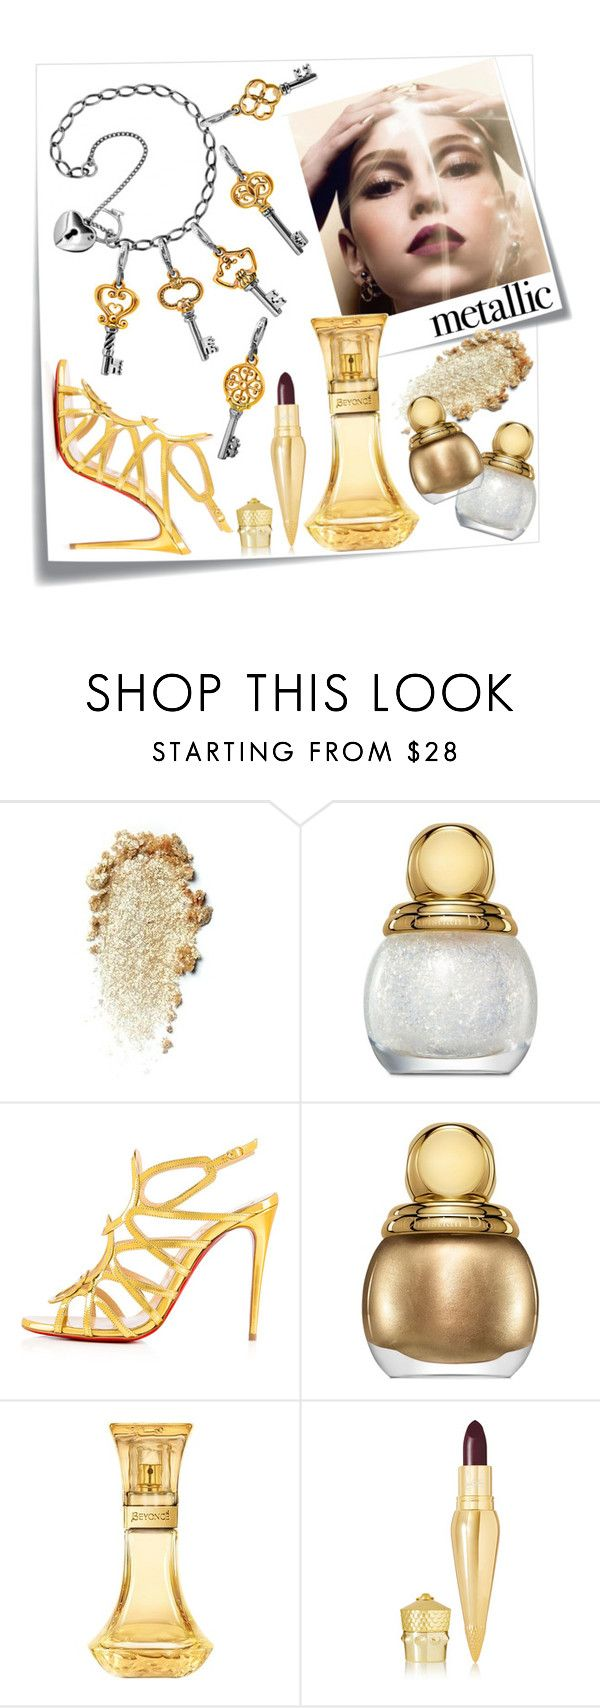 """Silver&gold"" by ledile ❤ liked on Polyvore featuring beauty, Post-It, Christian Dior, Christian Louboutin, Silver, charms, ledile and charmsbracelets"